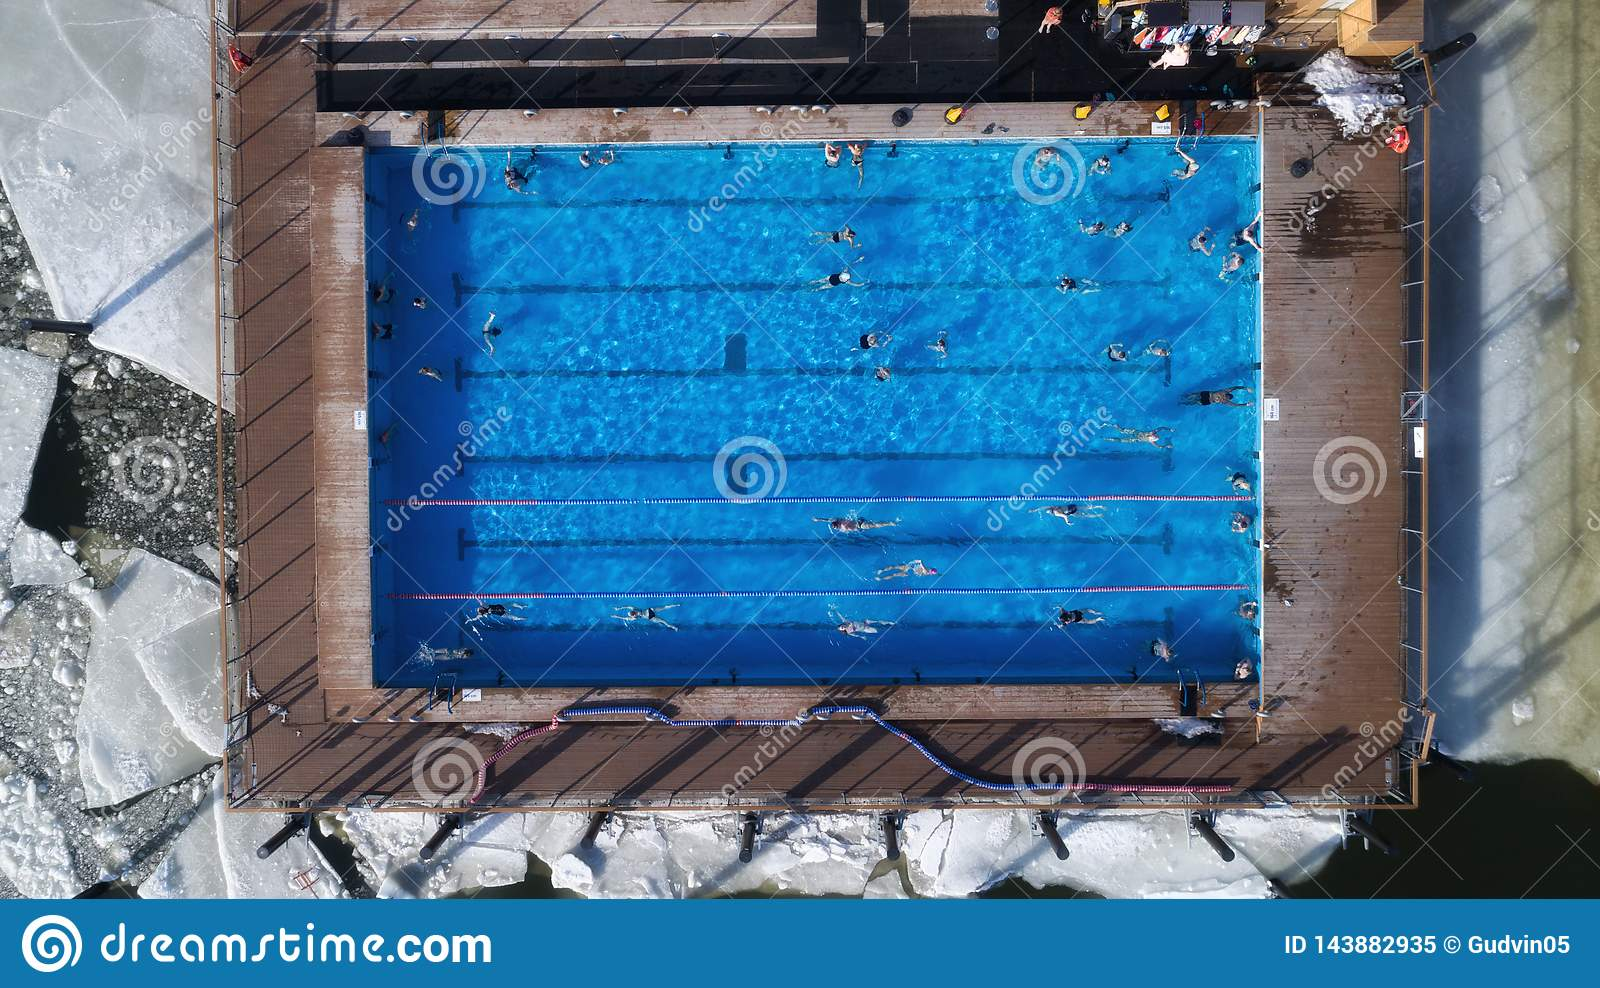 People swimming in the pool at winter top view angle